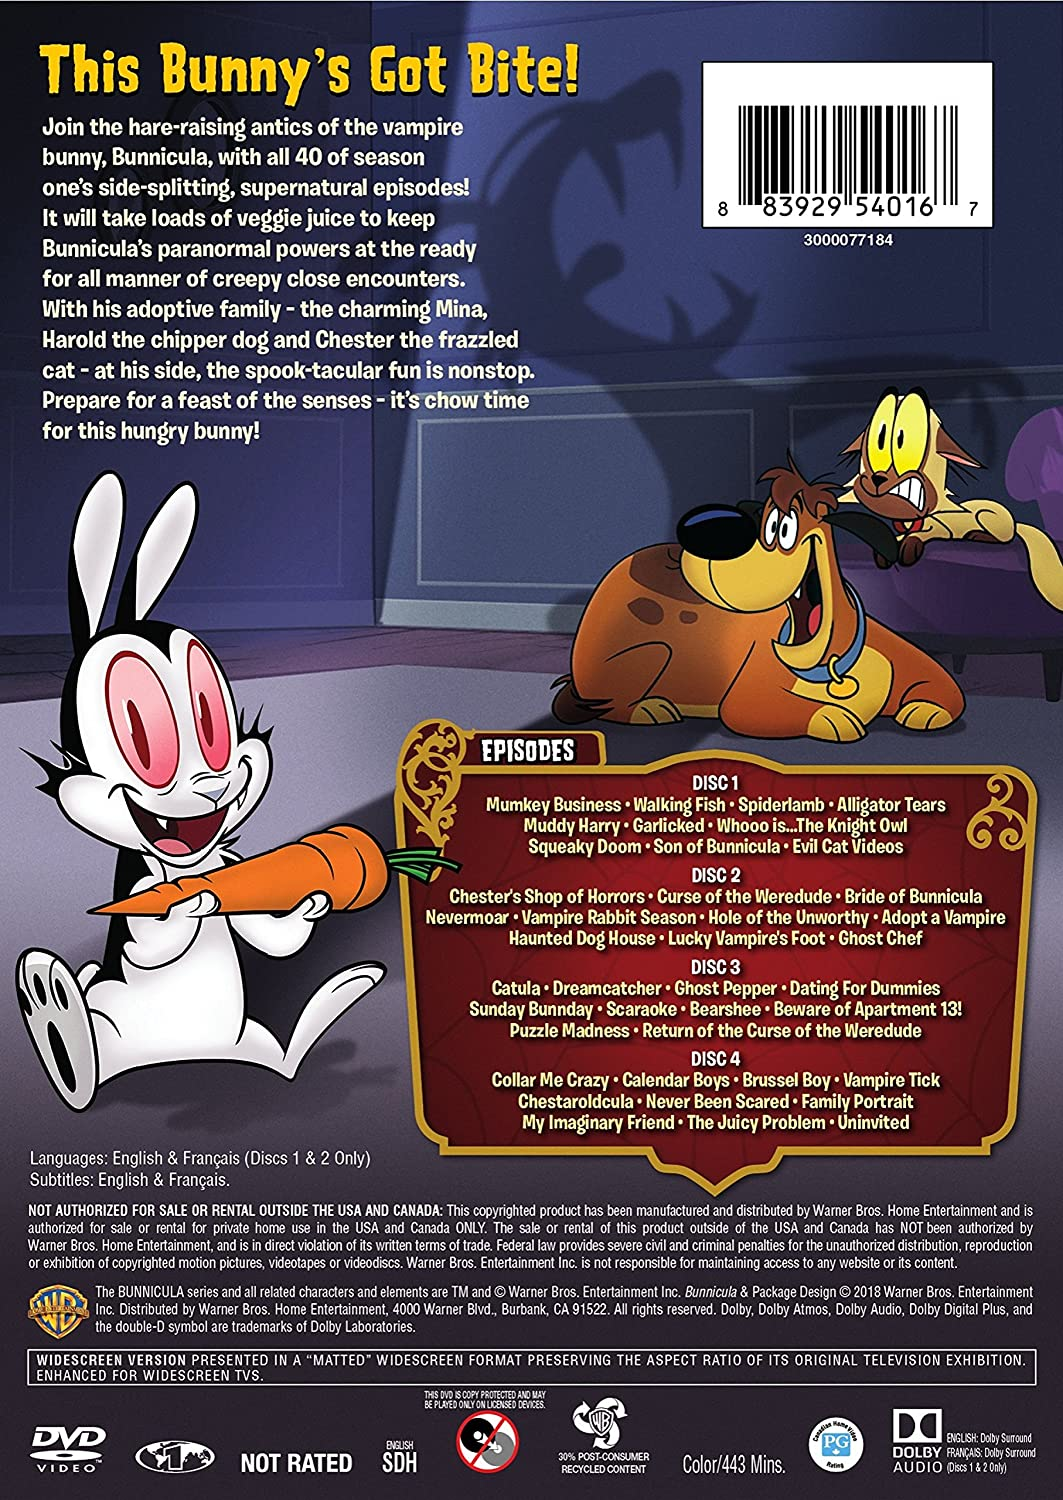 Bunnicula dating for dummies